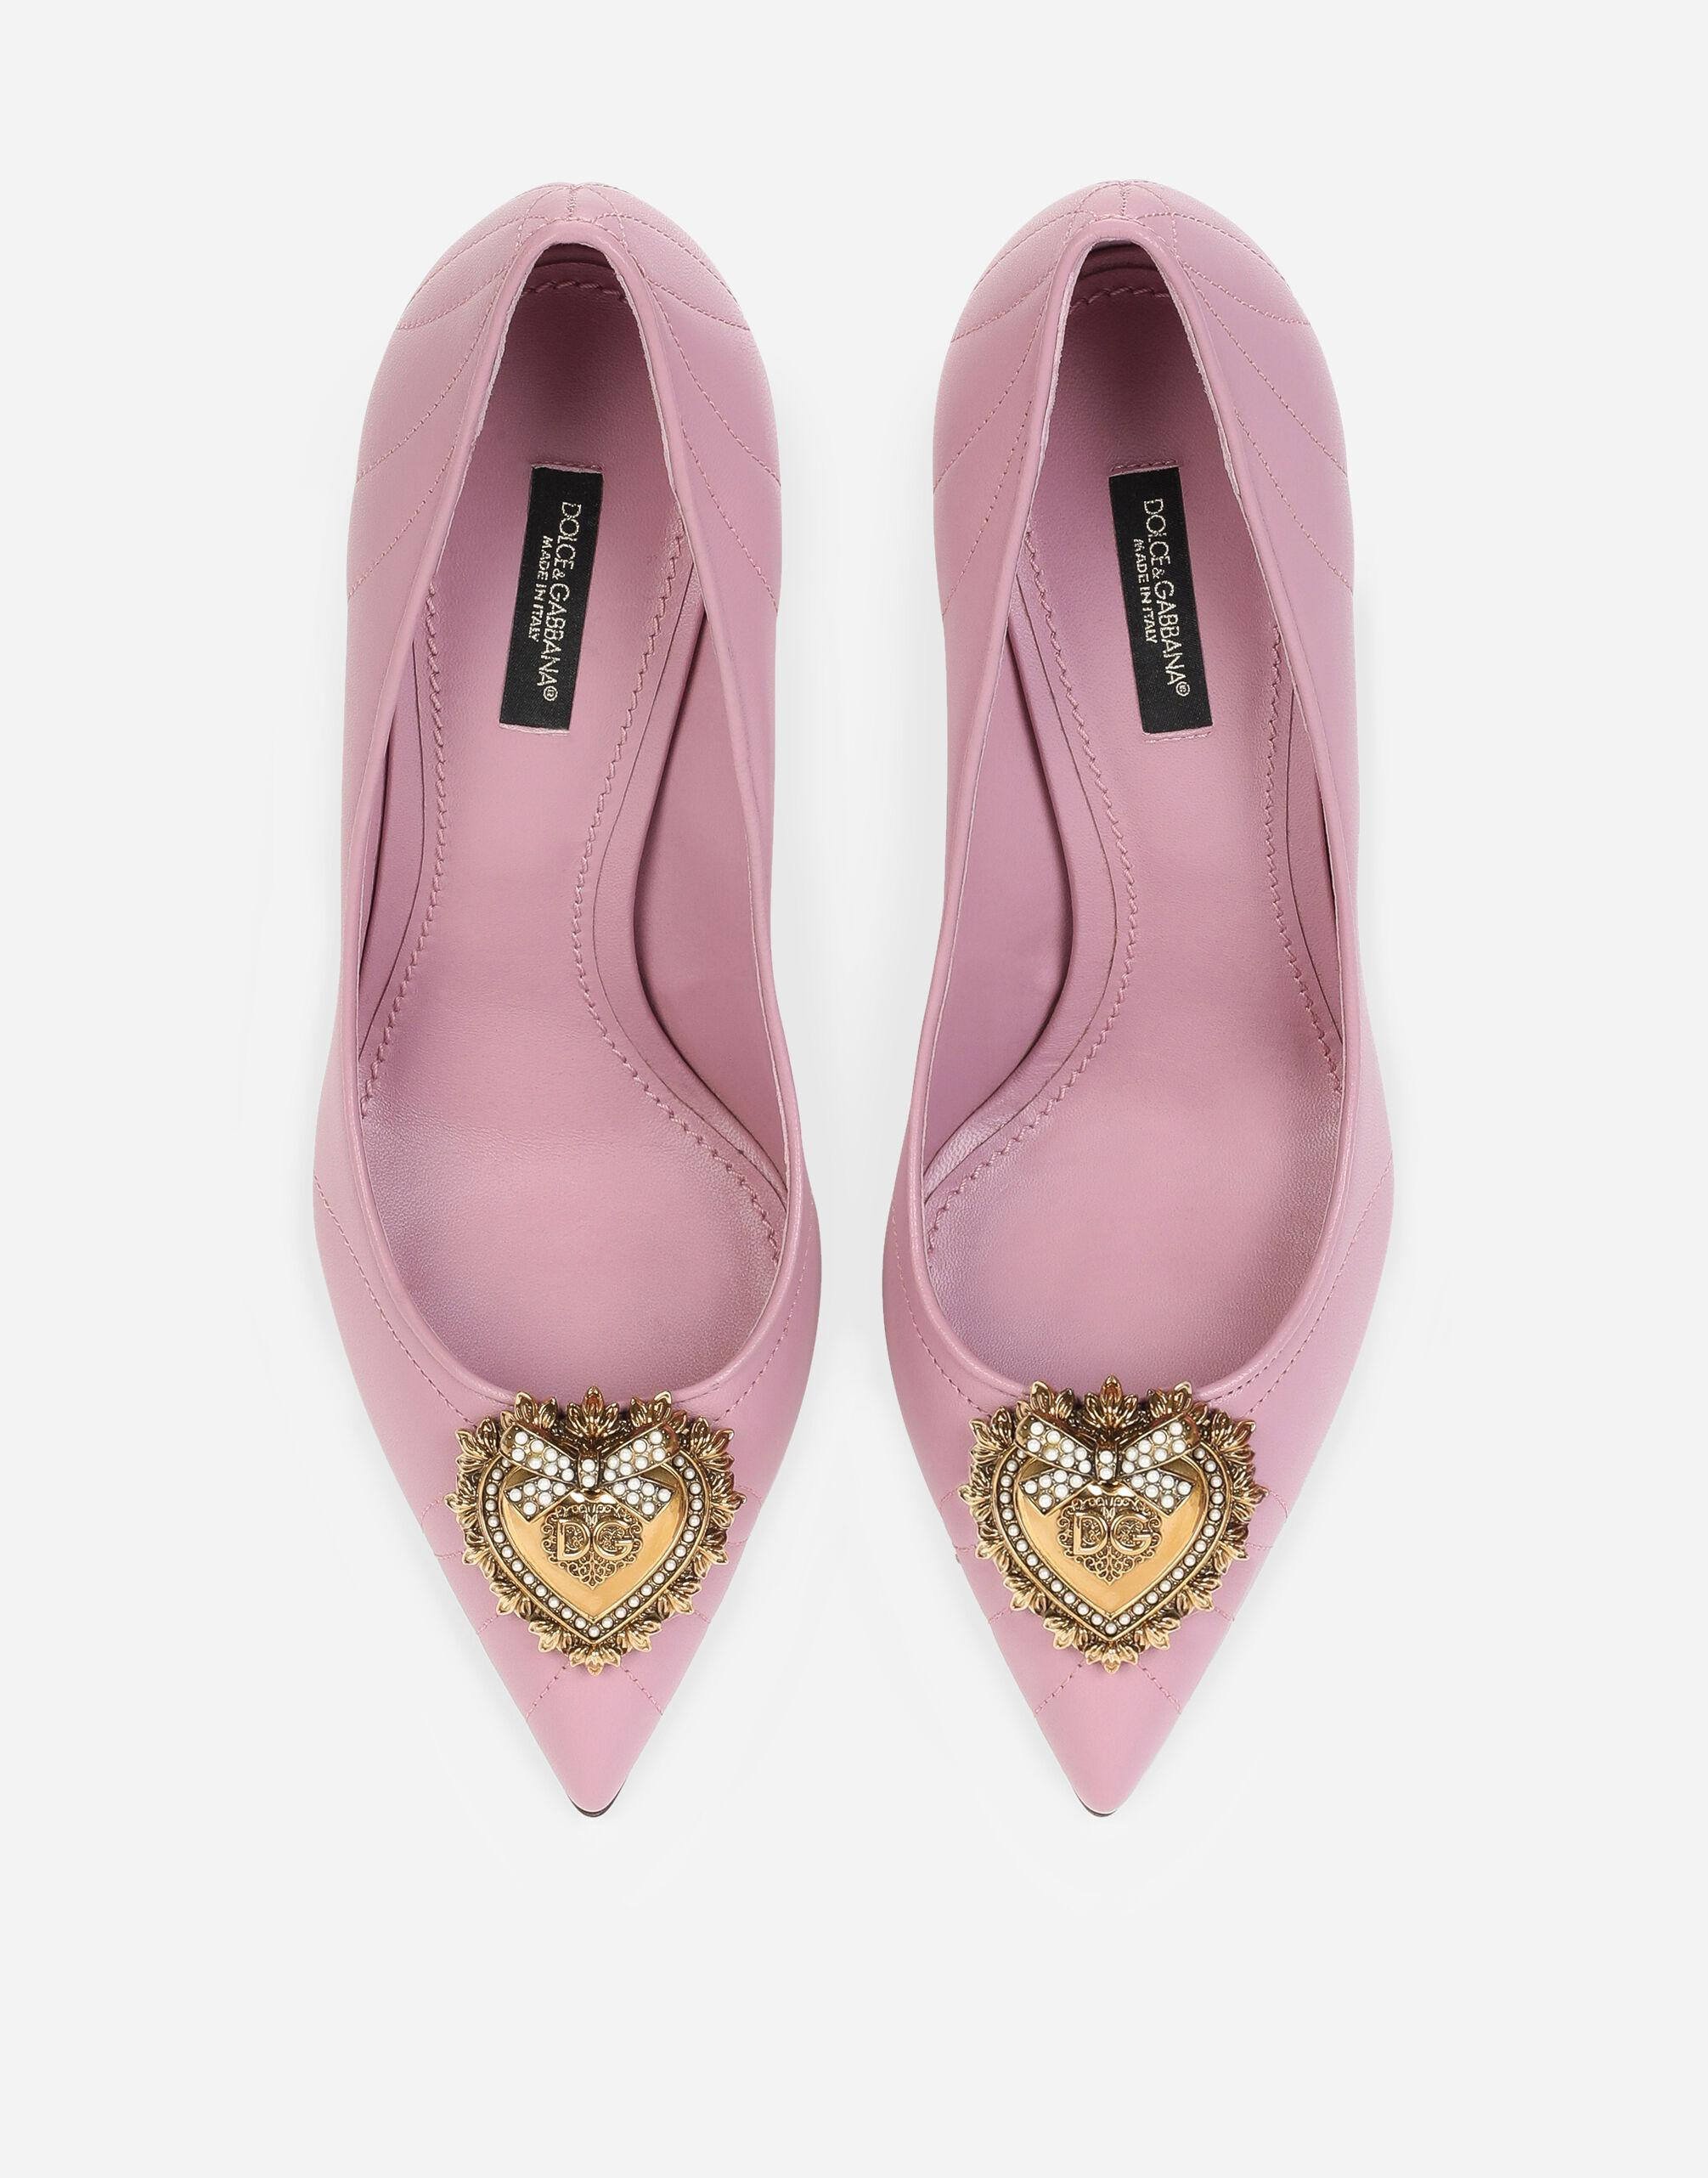 Quilted nappa leather Devotion pumps 3